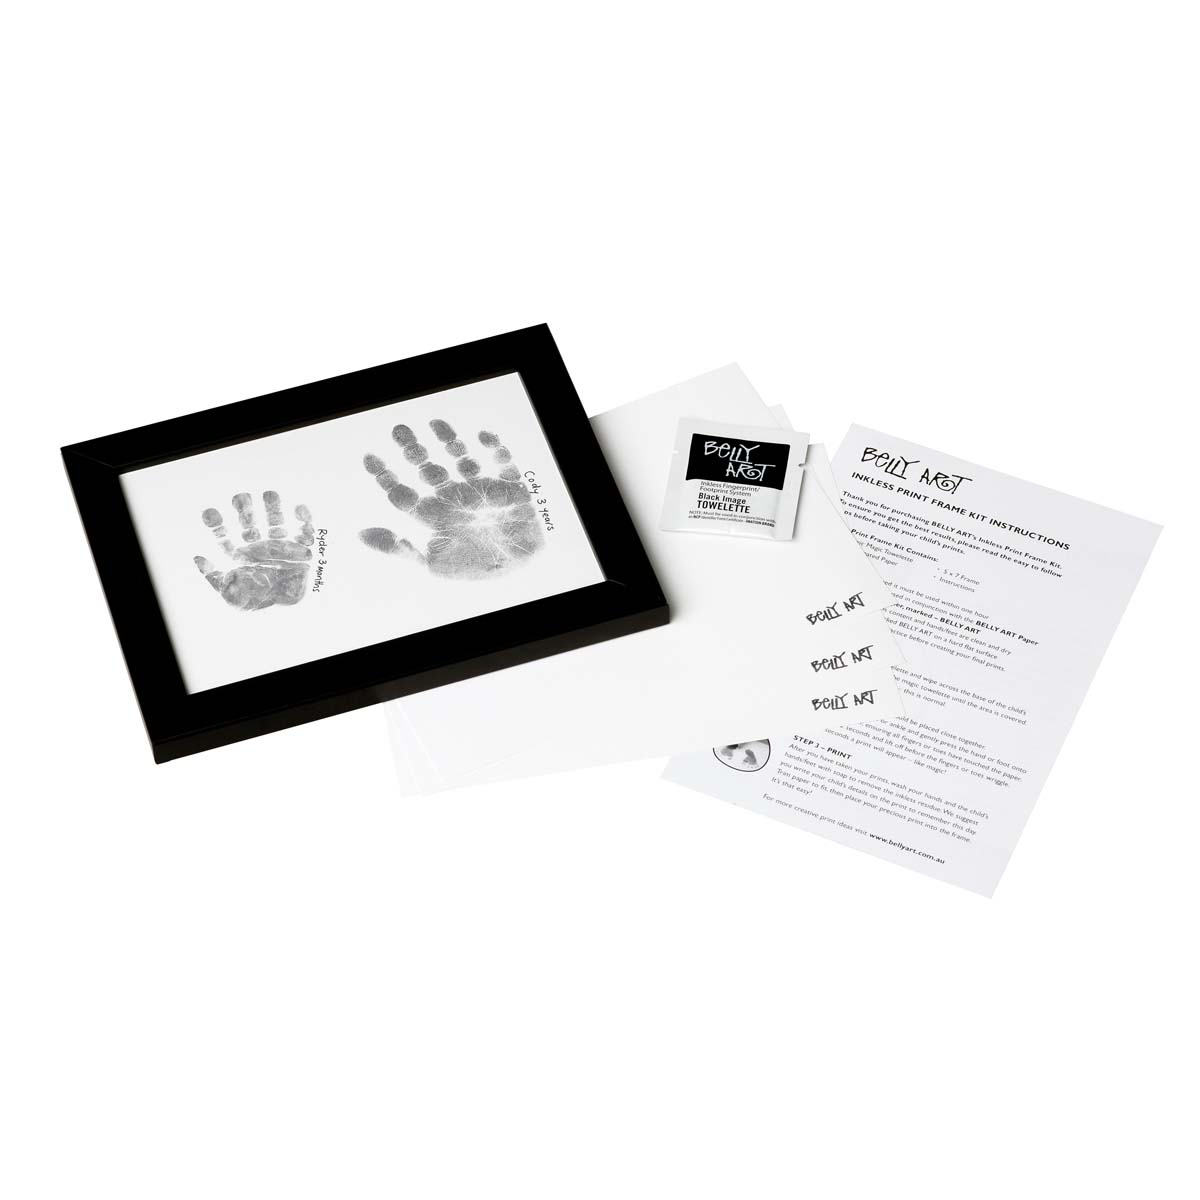 Belly Art Framed inkless print kit